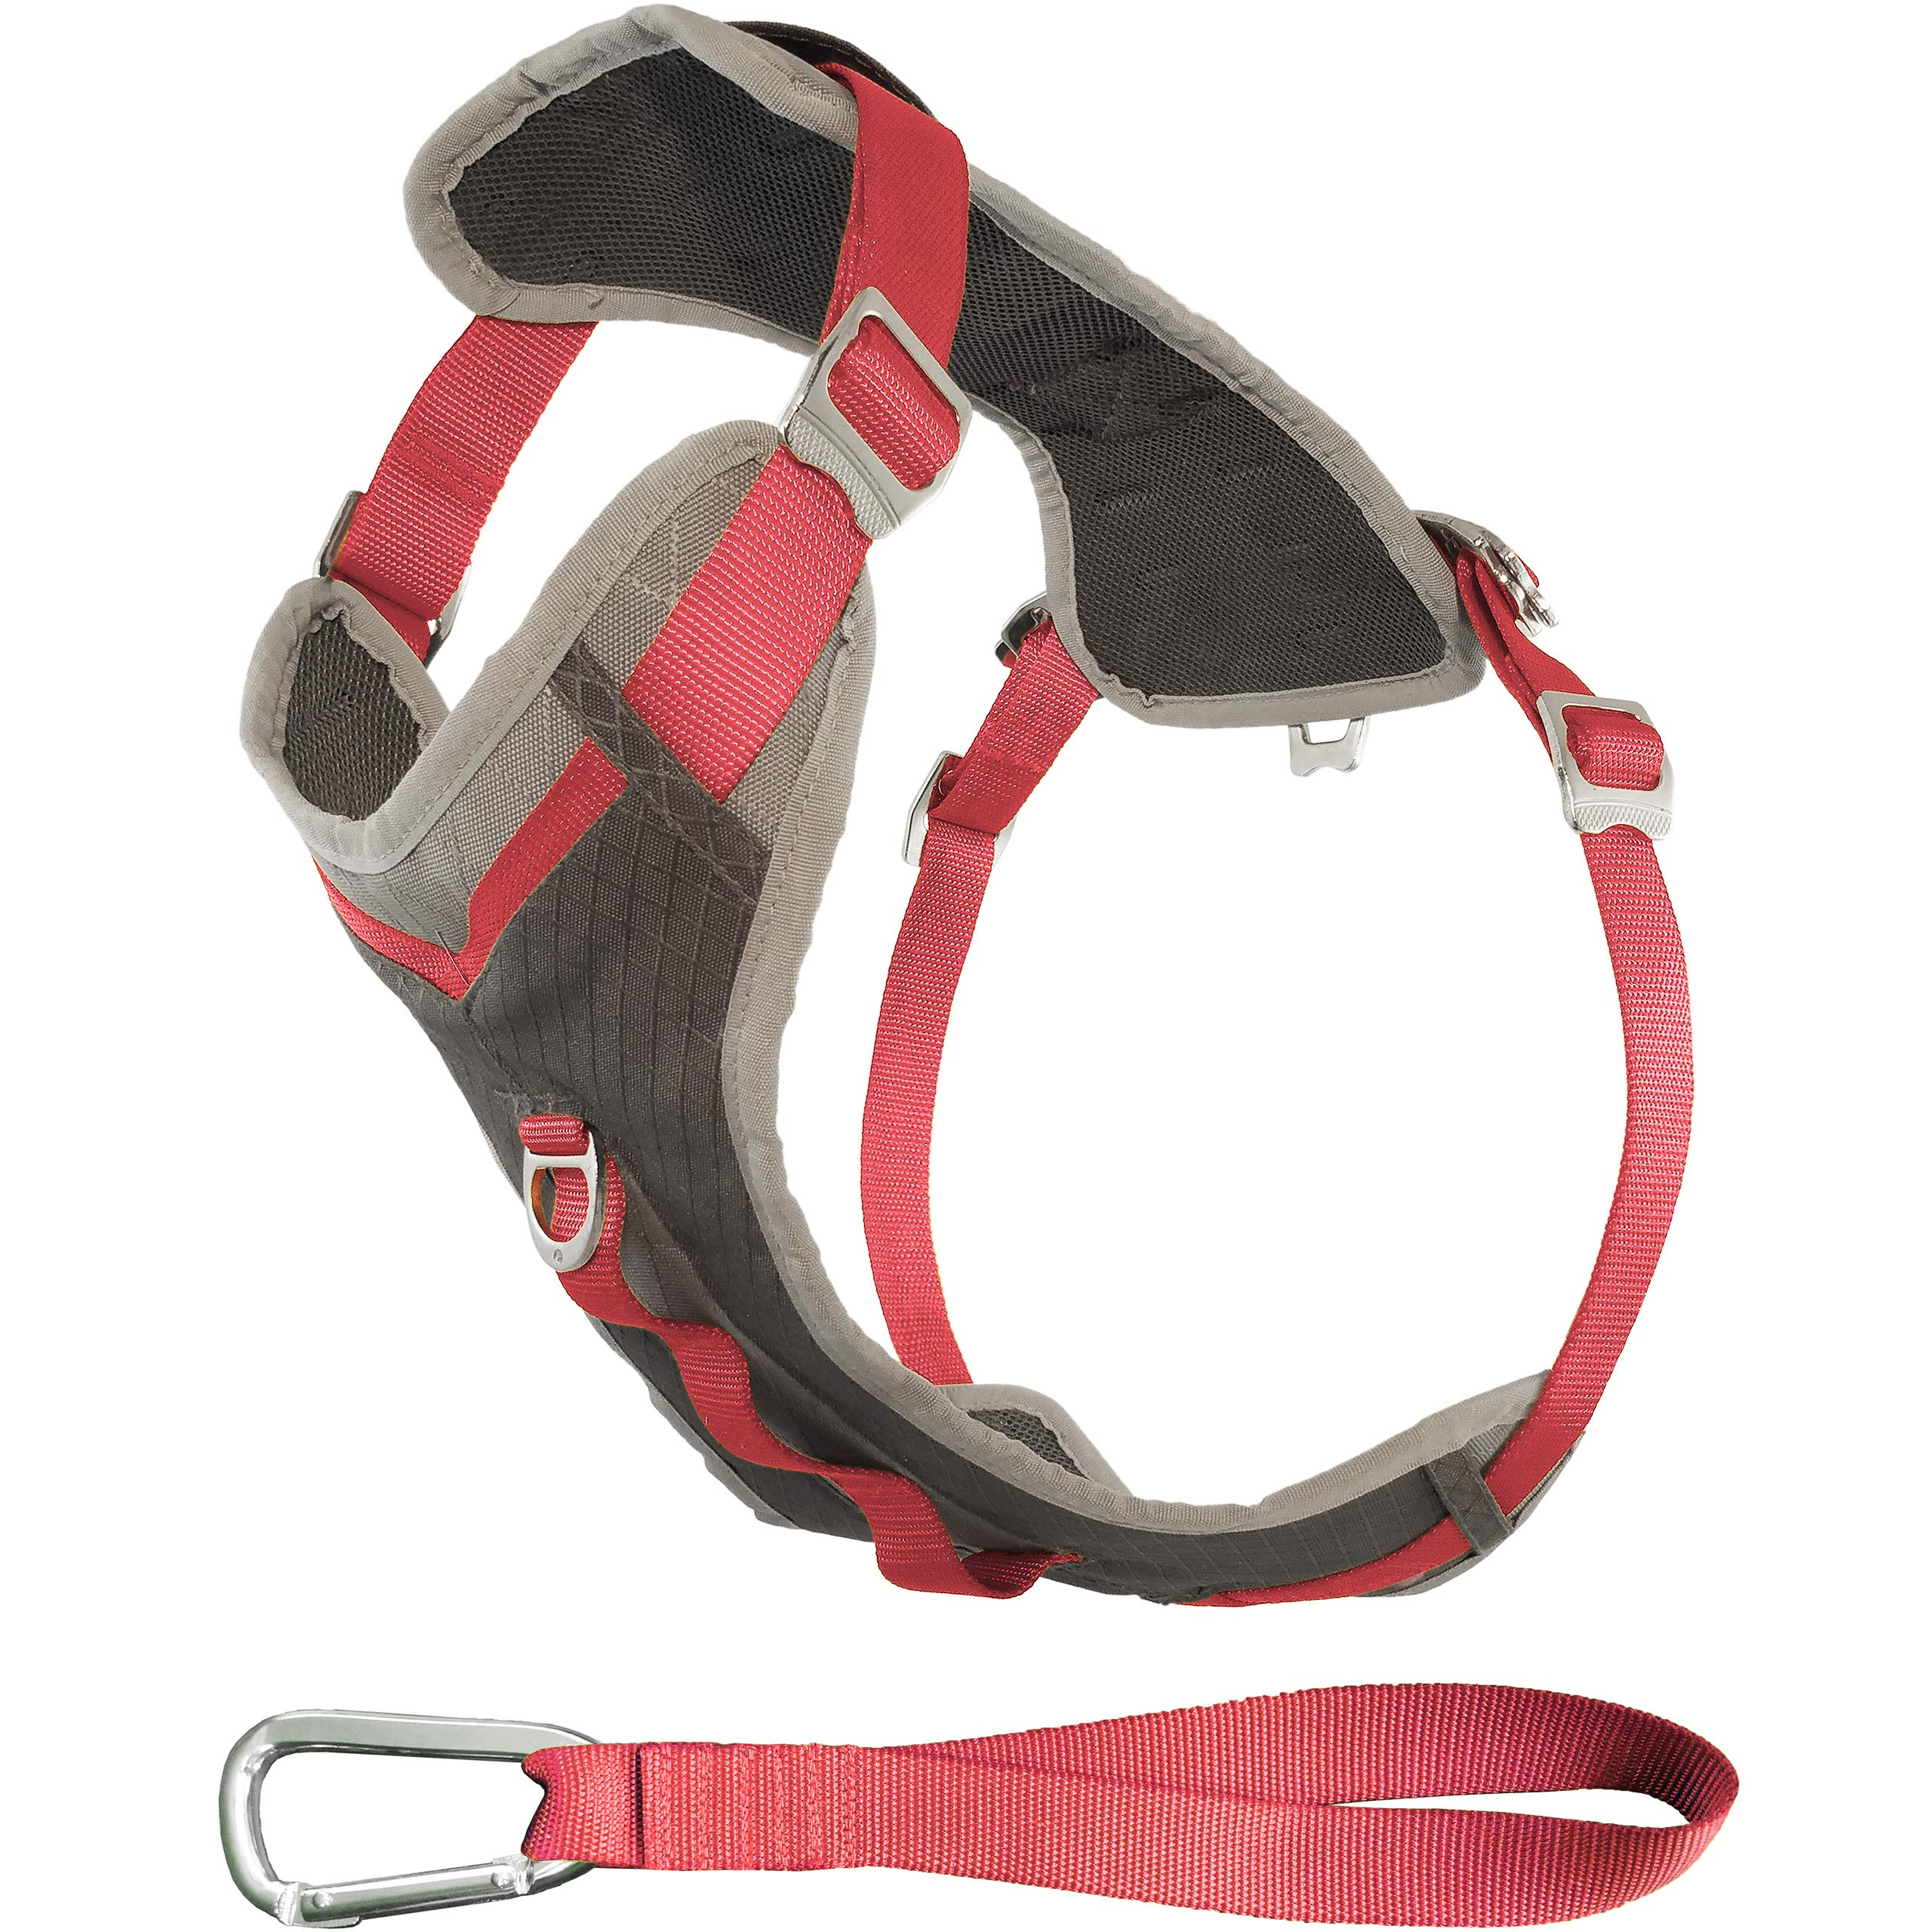 Kurgo Dog Harness for Large, Medium & Small Dogs | Reflective Harness for Running, Walking & Hiking | Everyday Adventure Pet Journey Harness | Grey/Coral, Medium by Kurgo